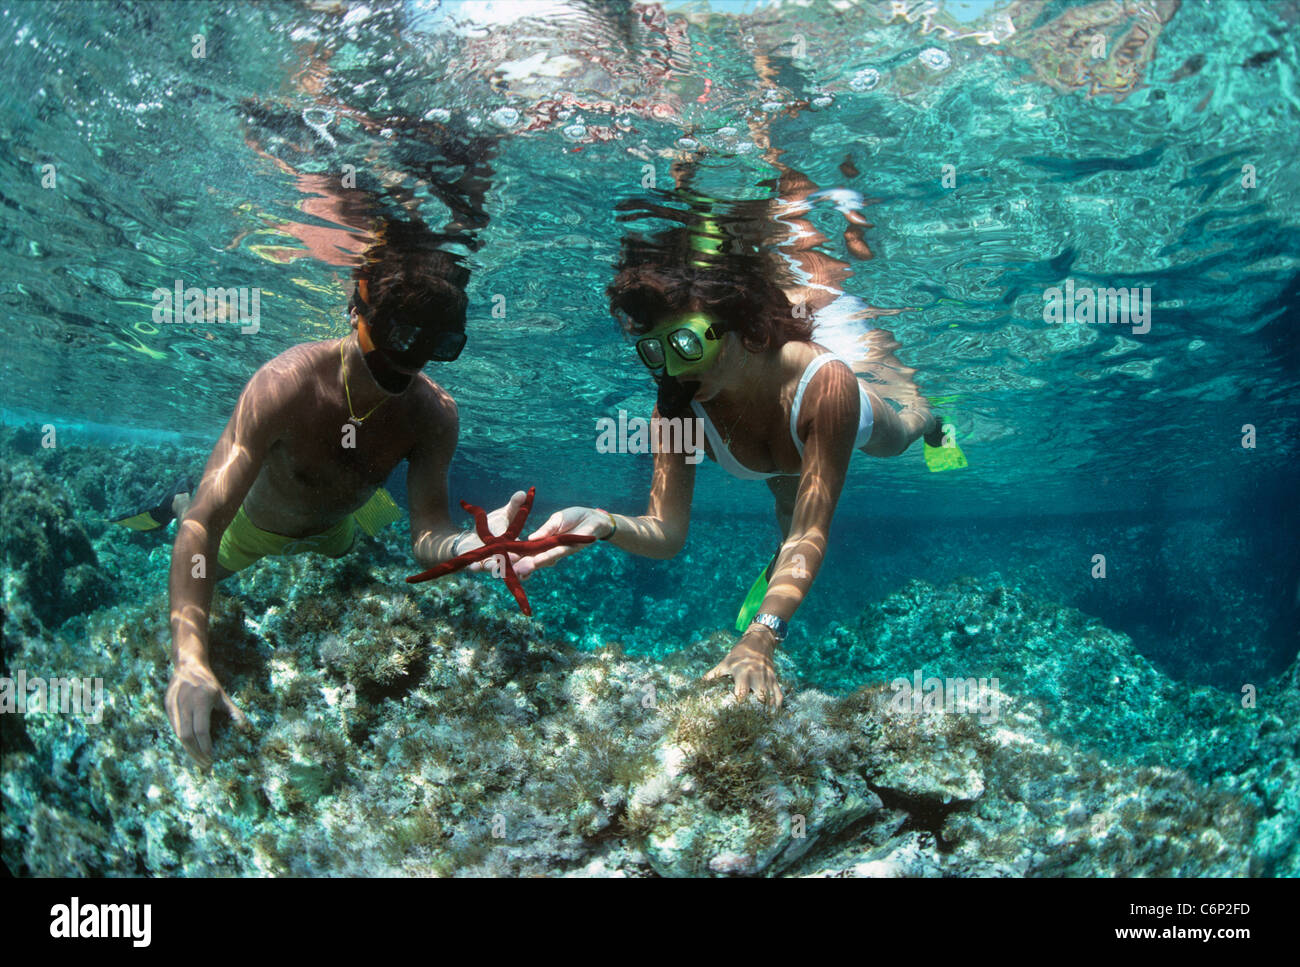 Divers snorkeling on coral table, holding a purple starfish (Ophidiaster ophidianus). Ustica Island, Sicily, Italy Stock Photo